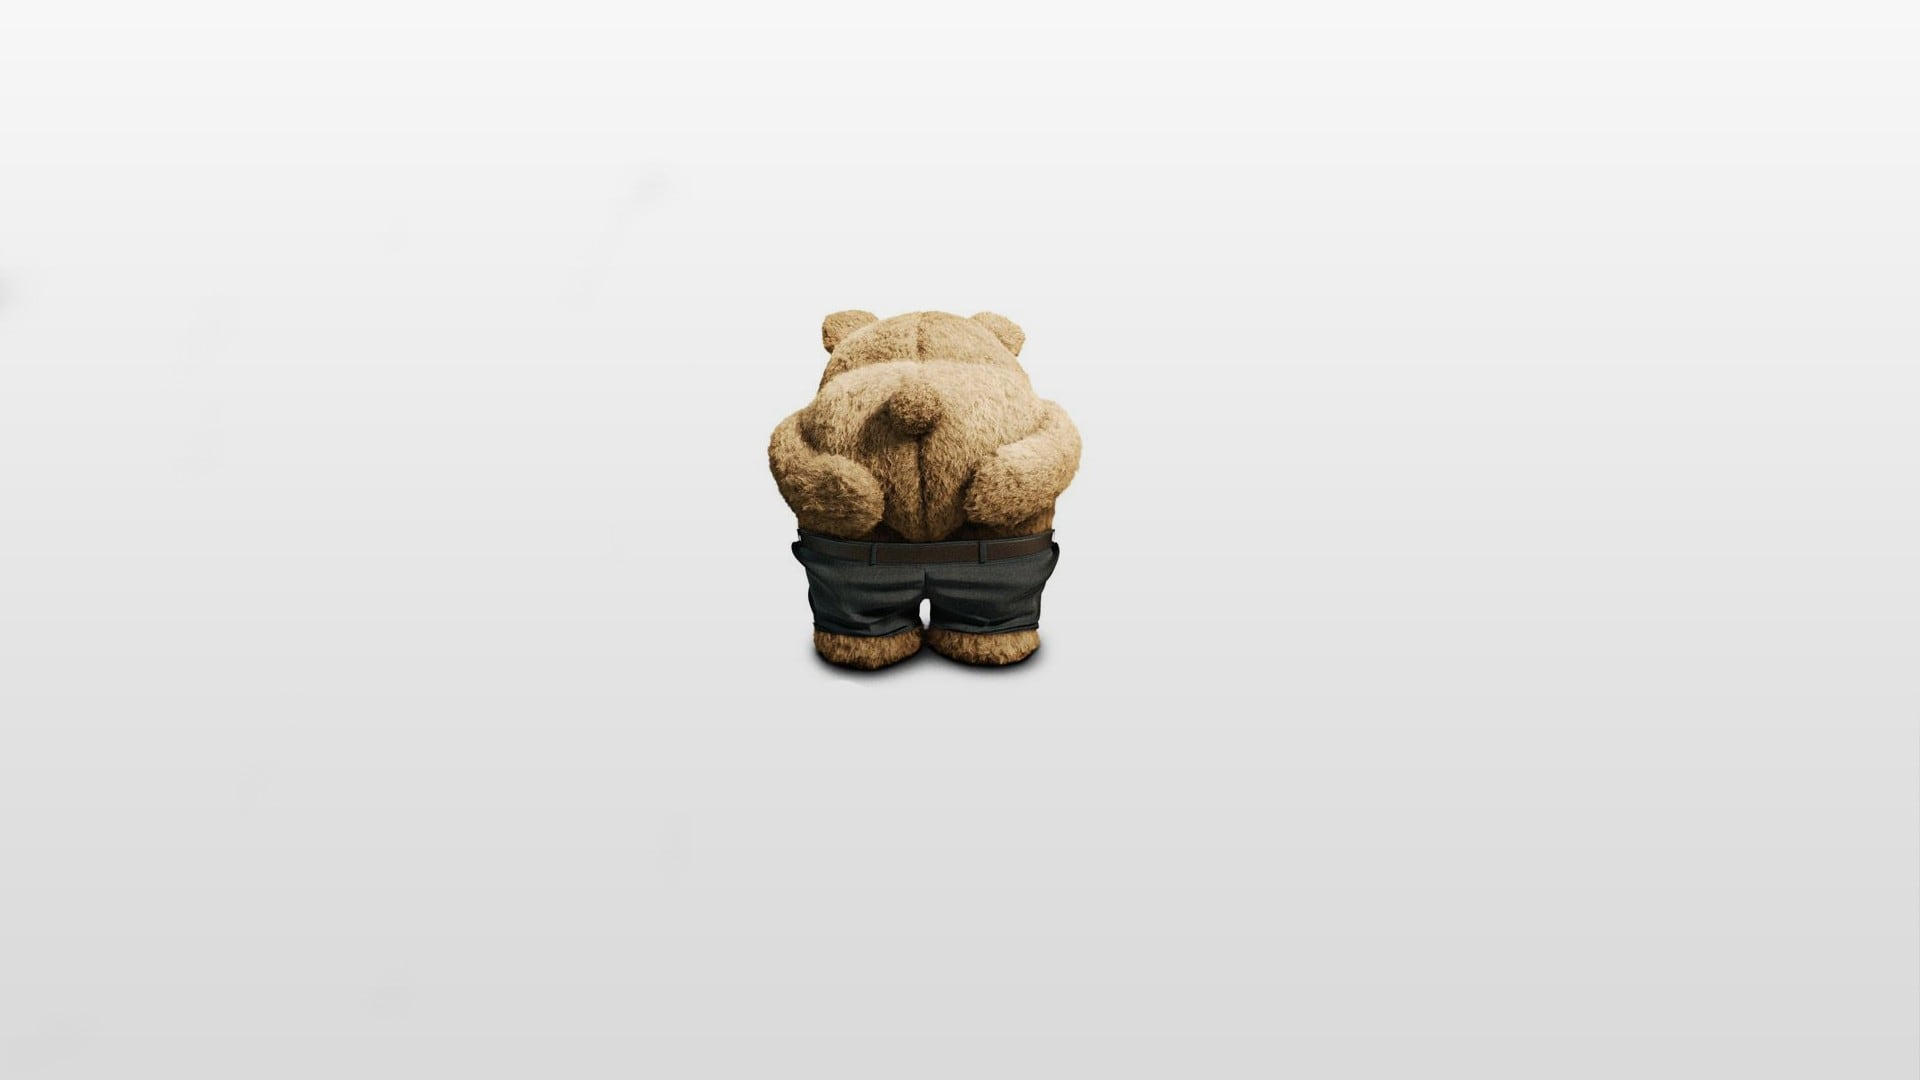 Ted 2 Wallpapers hd